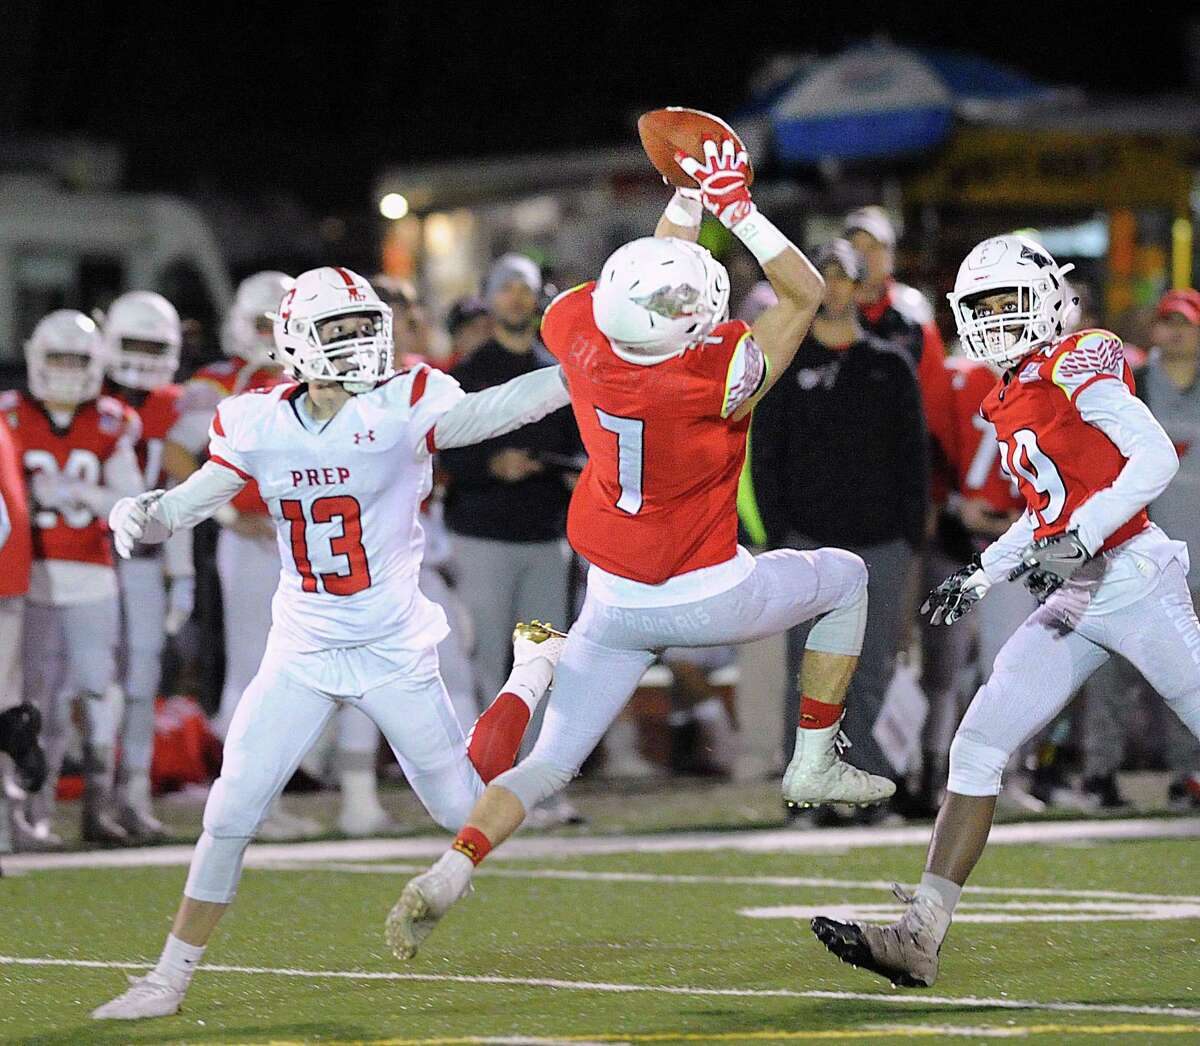 Greenwich safety Charlie Ducret (7) makes an interception against Fairfield Prep during last year's Class LL state playoff game in Greenwich.